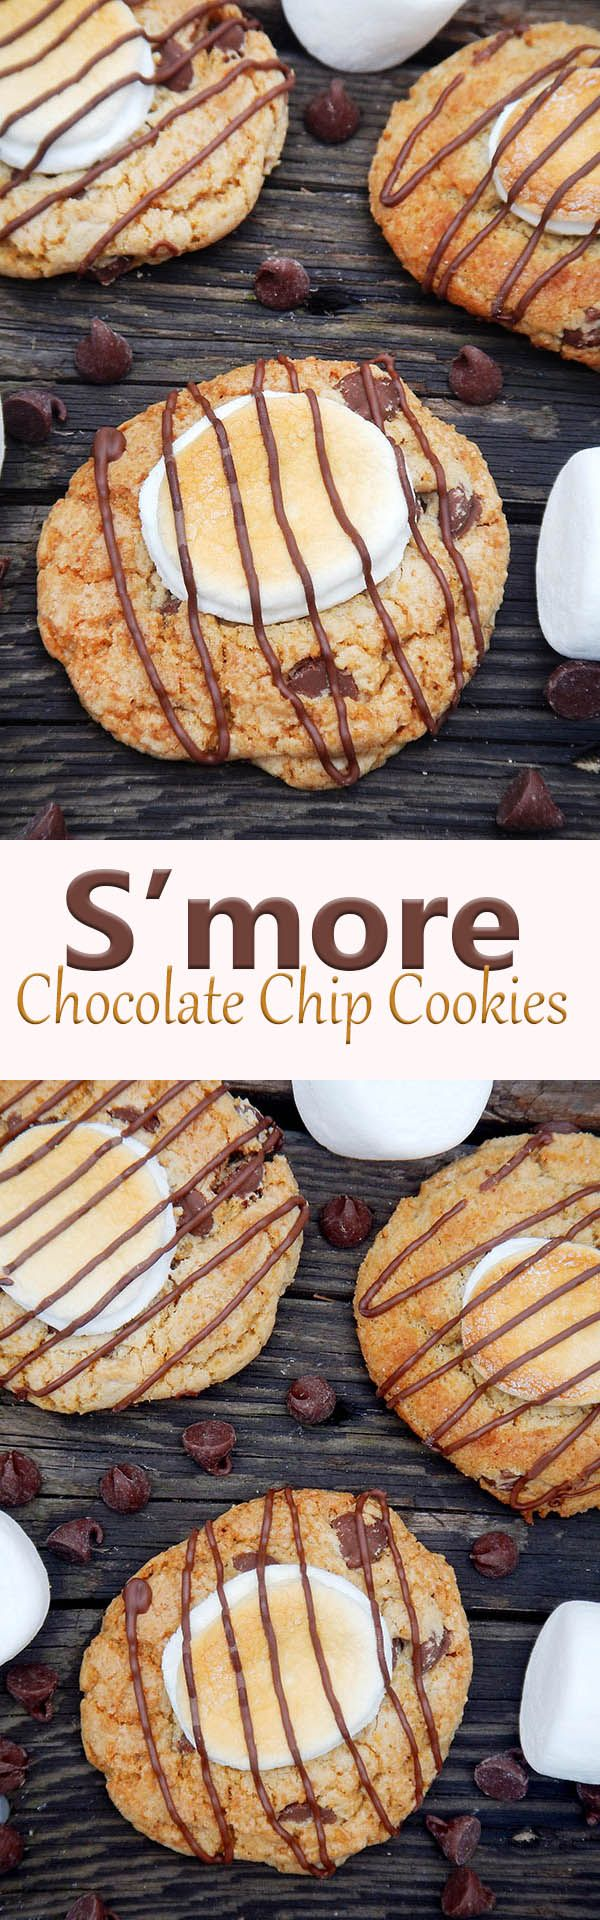 S'more chocolate chip cookies are soft graham cracker-based cookies packed with milk chocolate chips and topped with toasted marshmallows.  A perfect treat for when you want fireside flavor without the campfire.